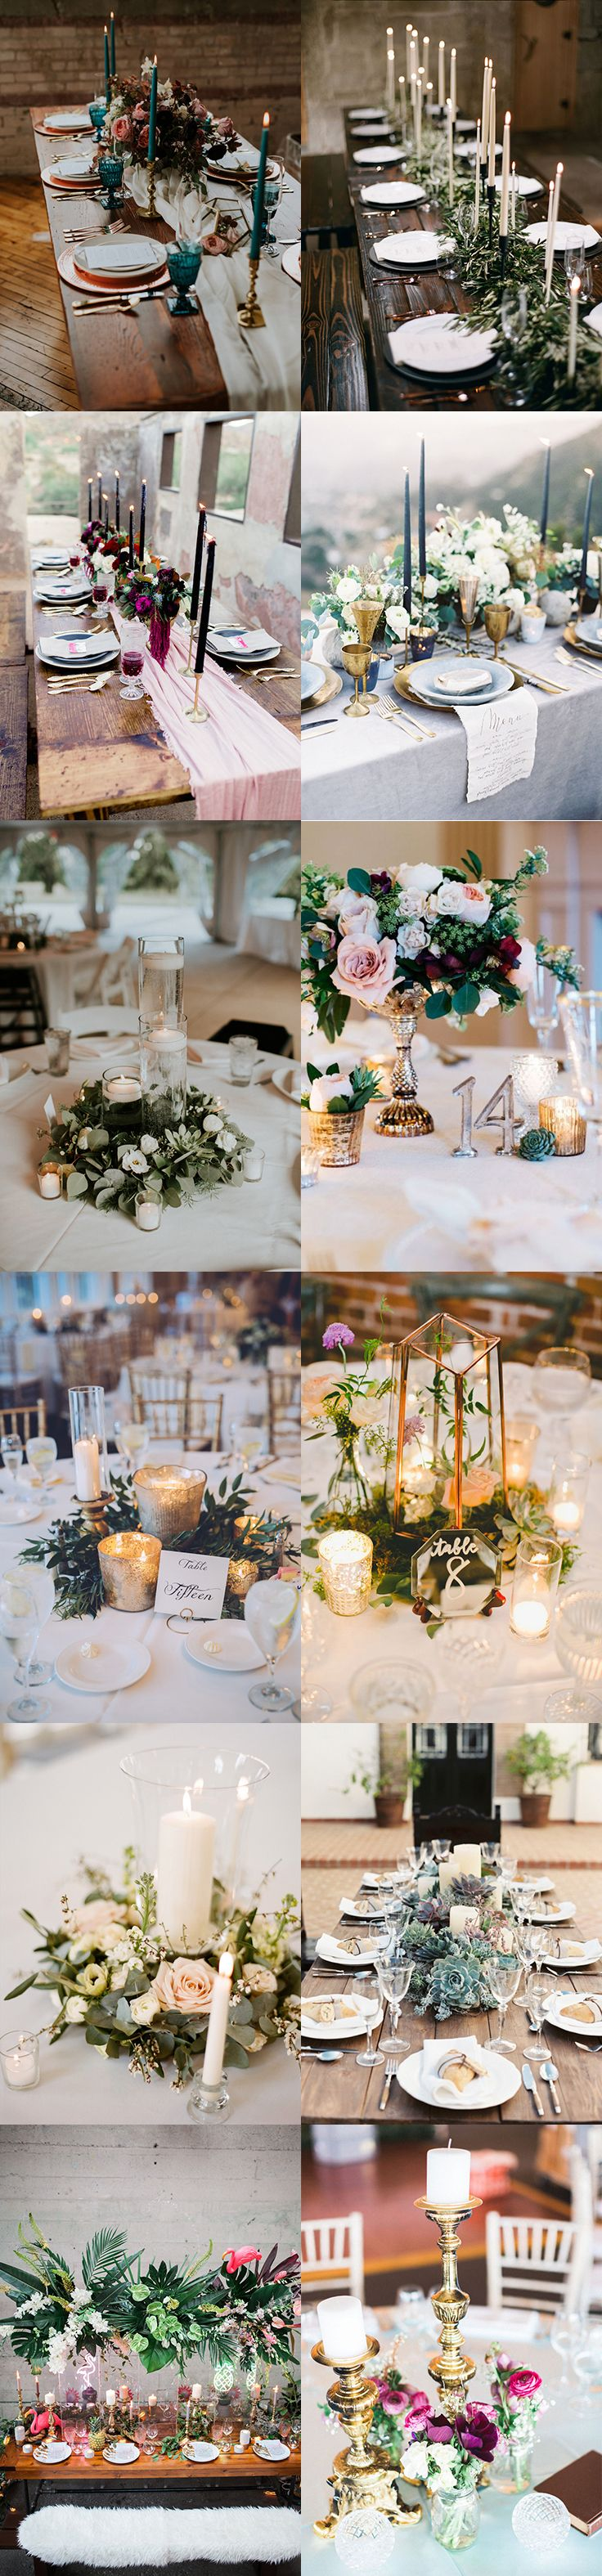 Pillar candles, tea light candles, tapered candles, beautiful table centrepieces, wedding reception, tablescapes, candles and flowers, wedding table decor